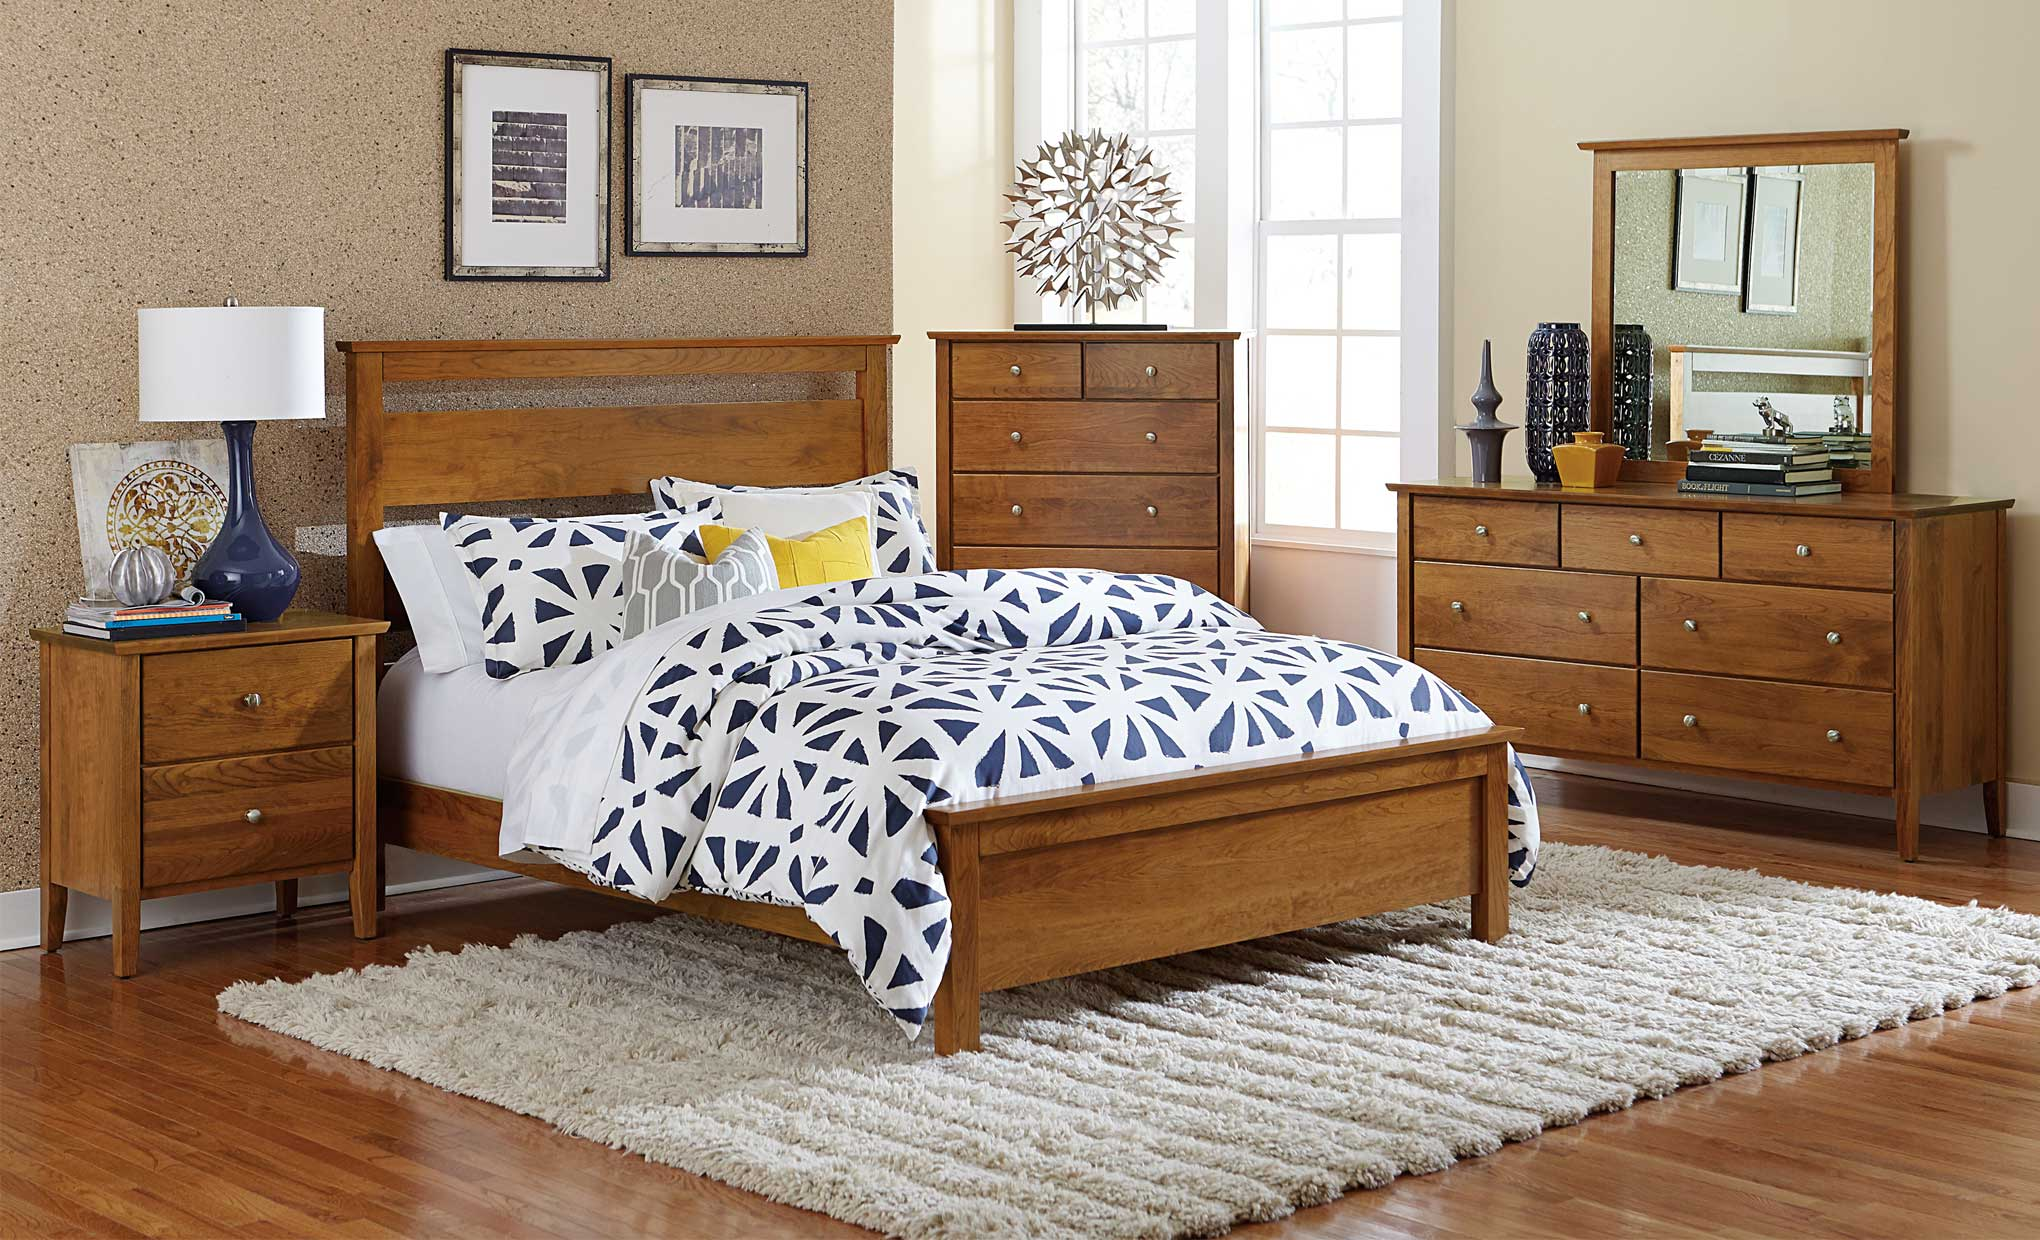 Our Amish Bedroom Furniture Sets Can Help You Create Your Ultimate  Peaceful, Dream Sleeping Sanctuary